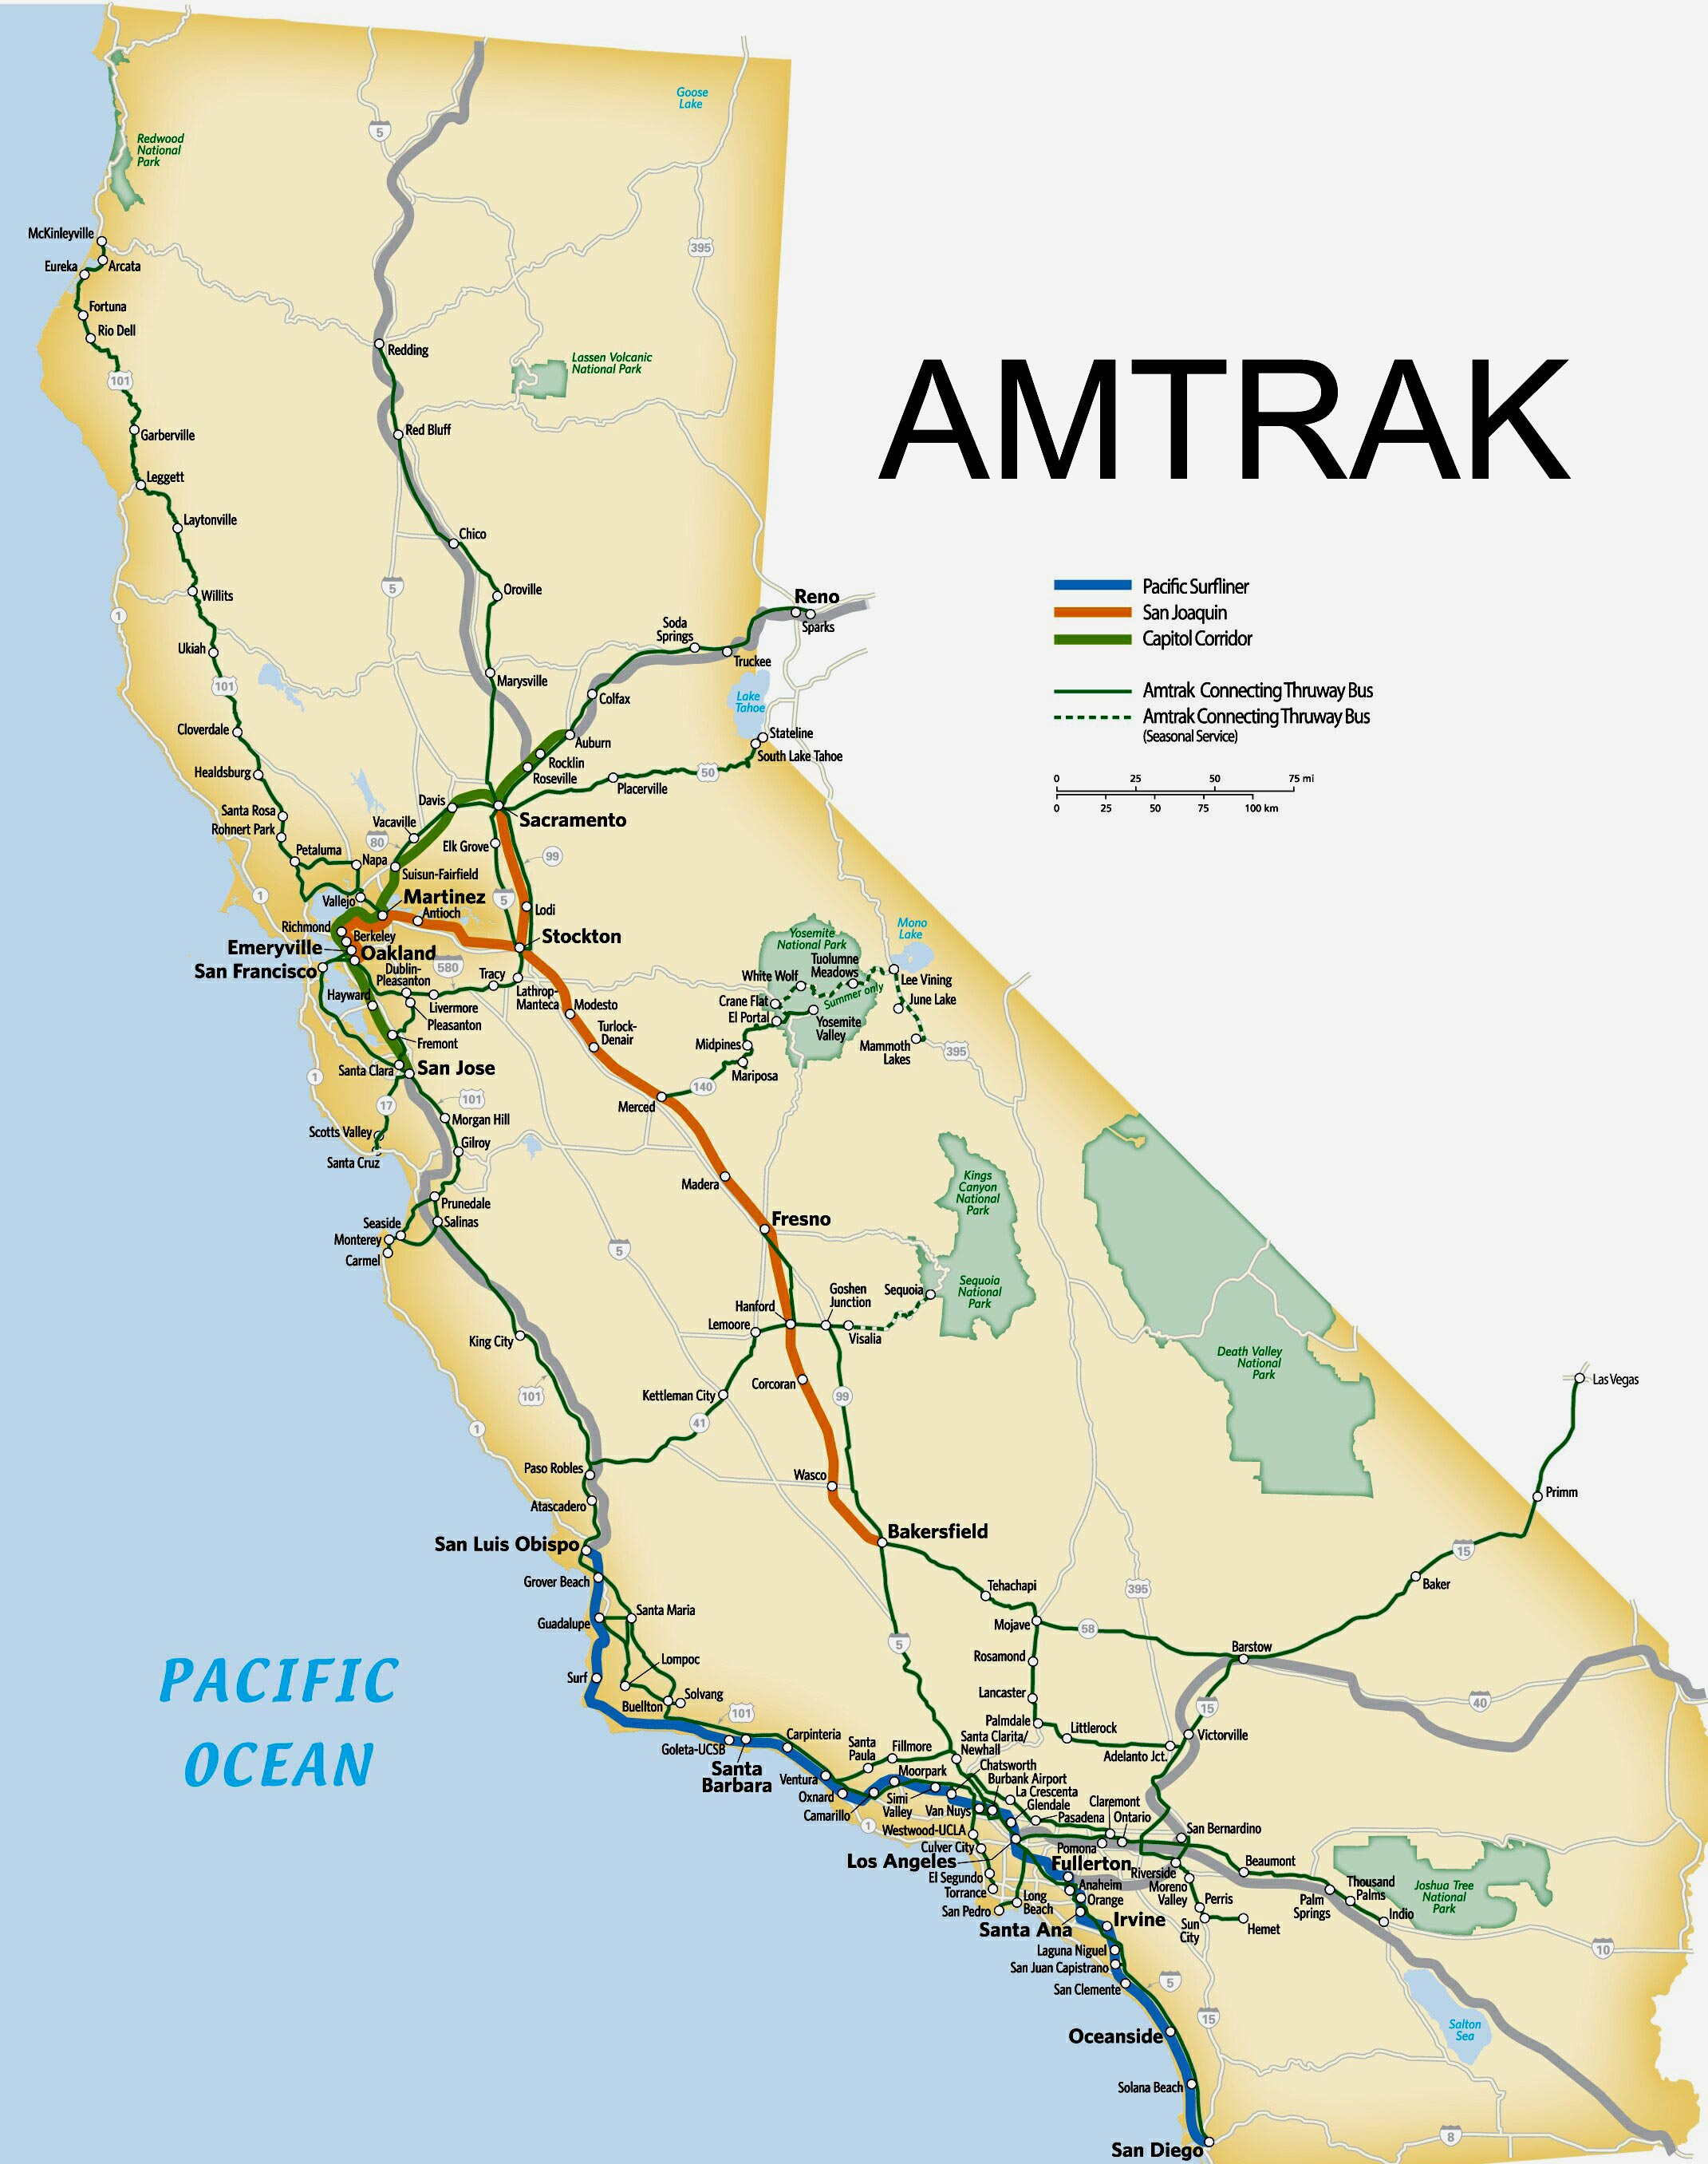 Amtrak Route Map Southern Map Of California Springs Amtrak Map - Amtrak Map Southern California